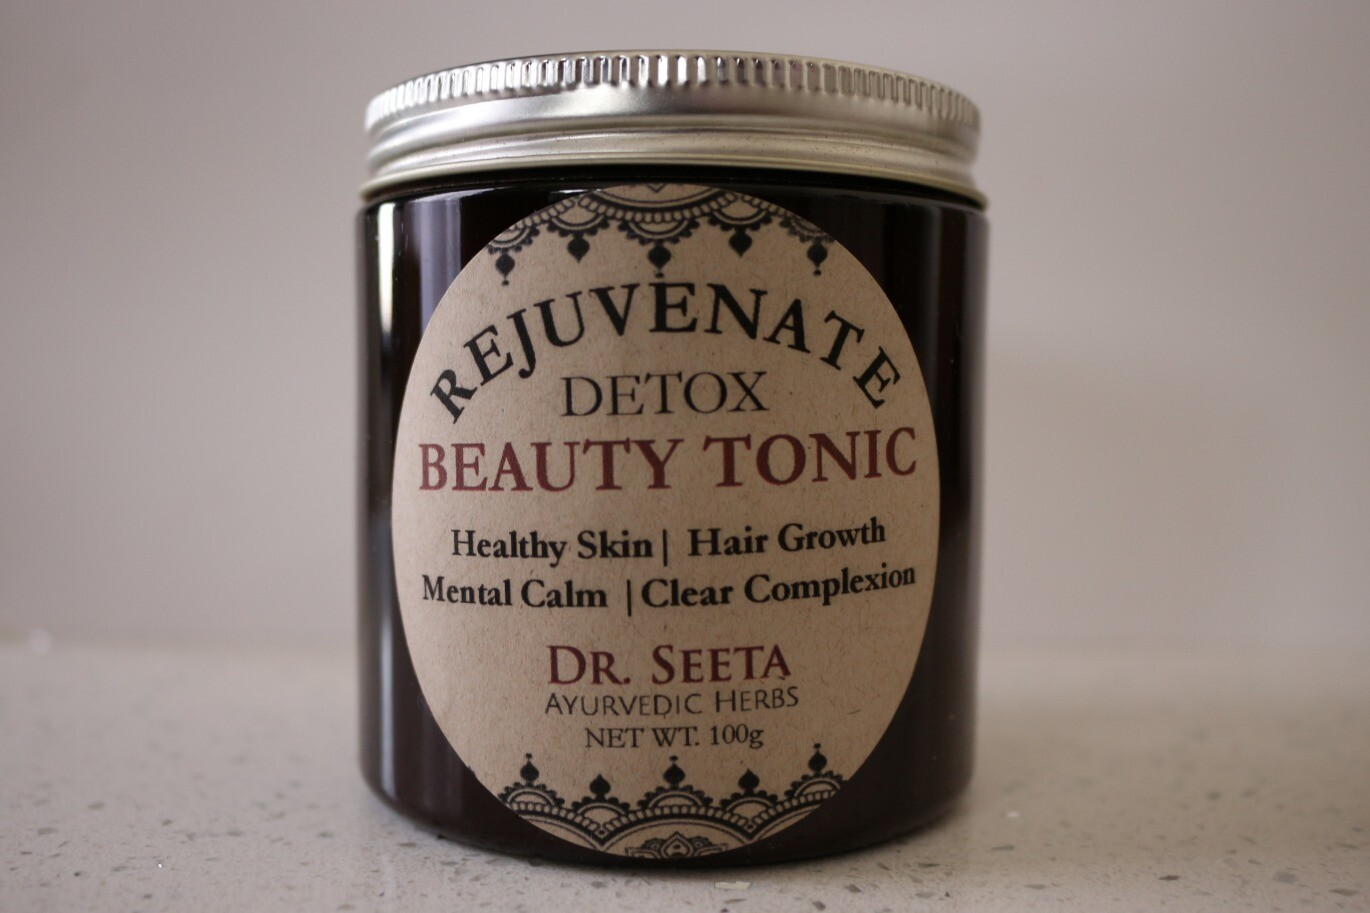 Detox Beauty Tonic